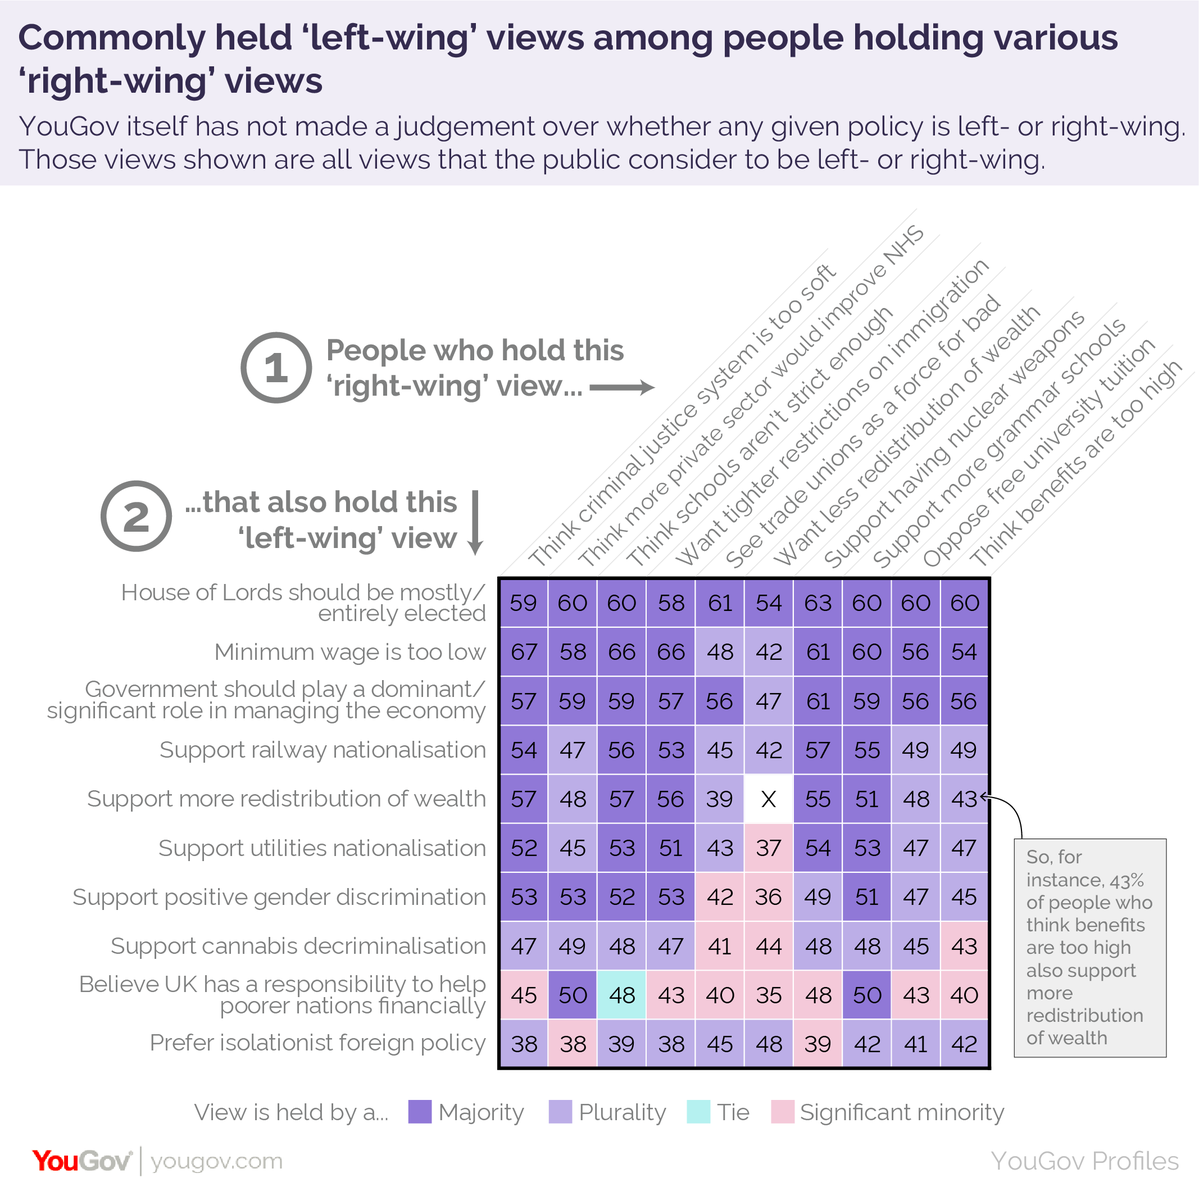 Again, it shows that huge numbers of people hold views that straddle the left/right divide. Of those who want to see tighter immigration restrictions 51-53% support railway or utilities nationalisation and 56% support greater redistribution of wealth... https://yougov.co.uk/topics/politics/articles-reports/2019/08/14/left-wing-vs-right-wing-its-complicated?utm_source=twitter&utm_medium=website_article&utm_campaign=left_right_wing…